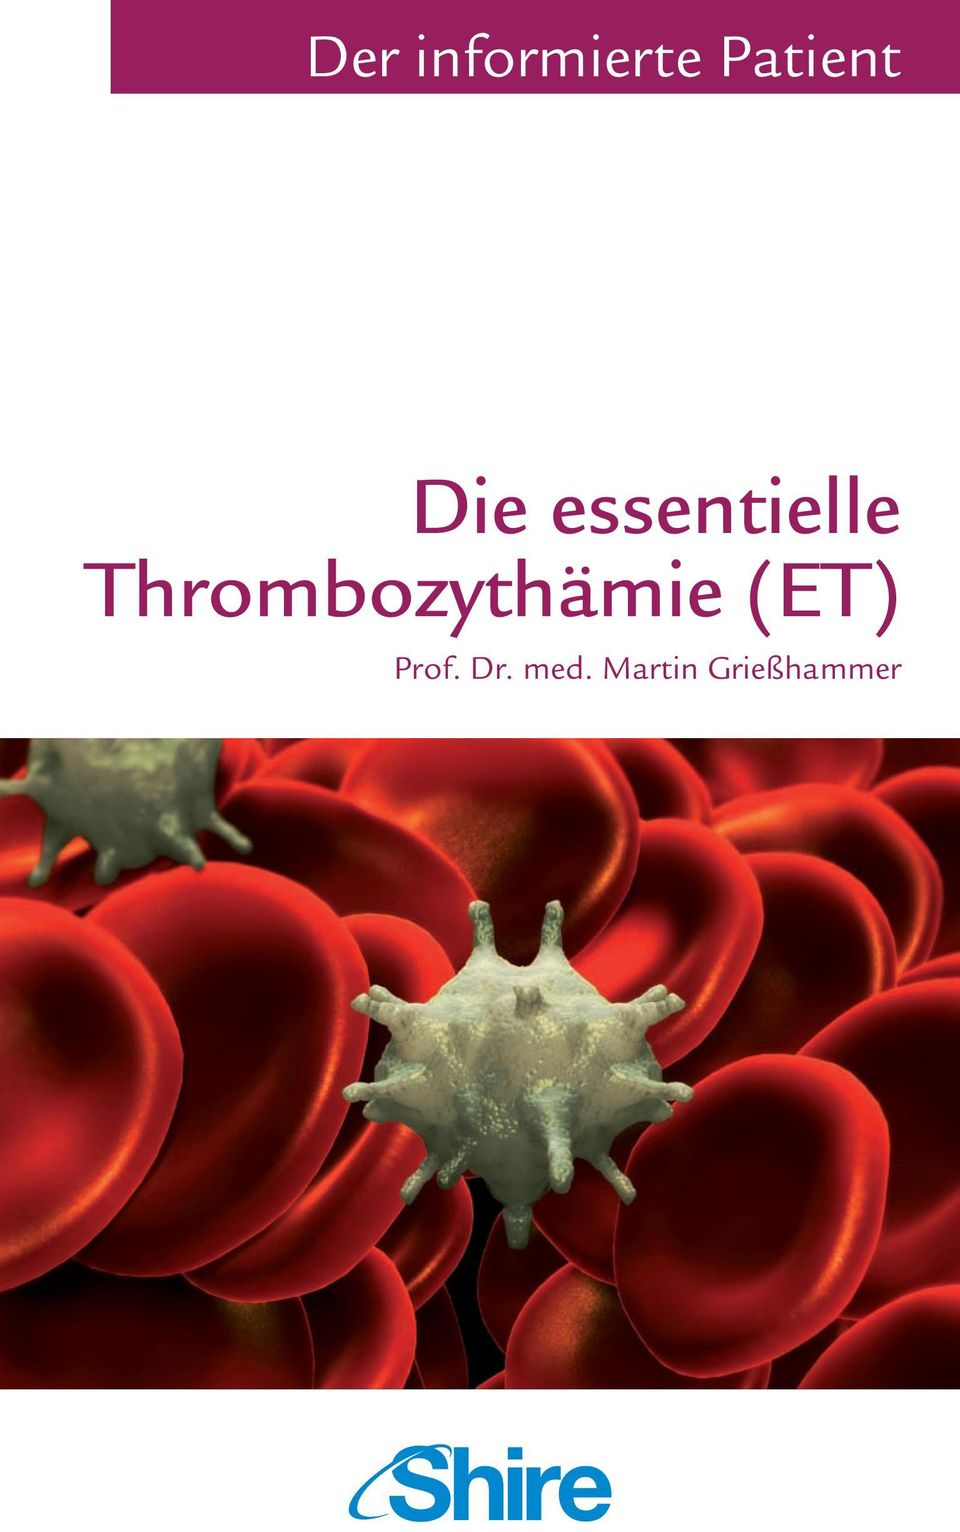 Thrombozythämie (ET)